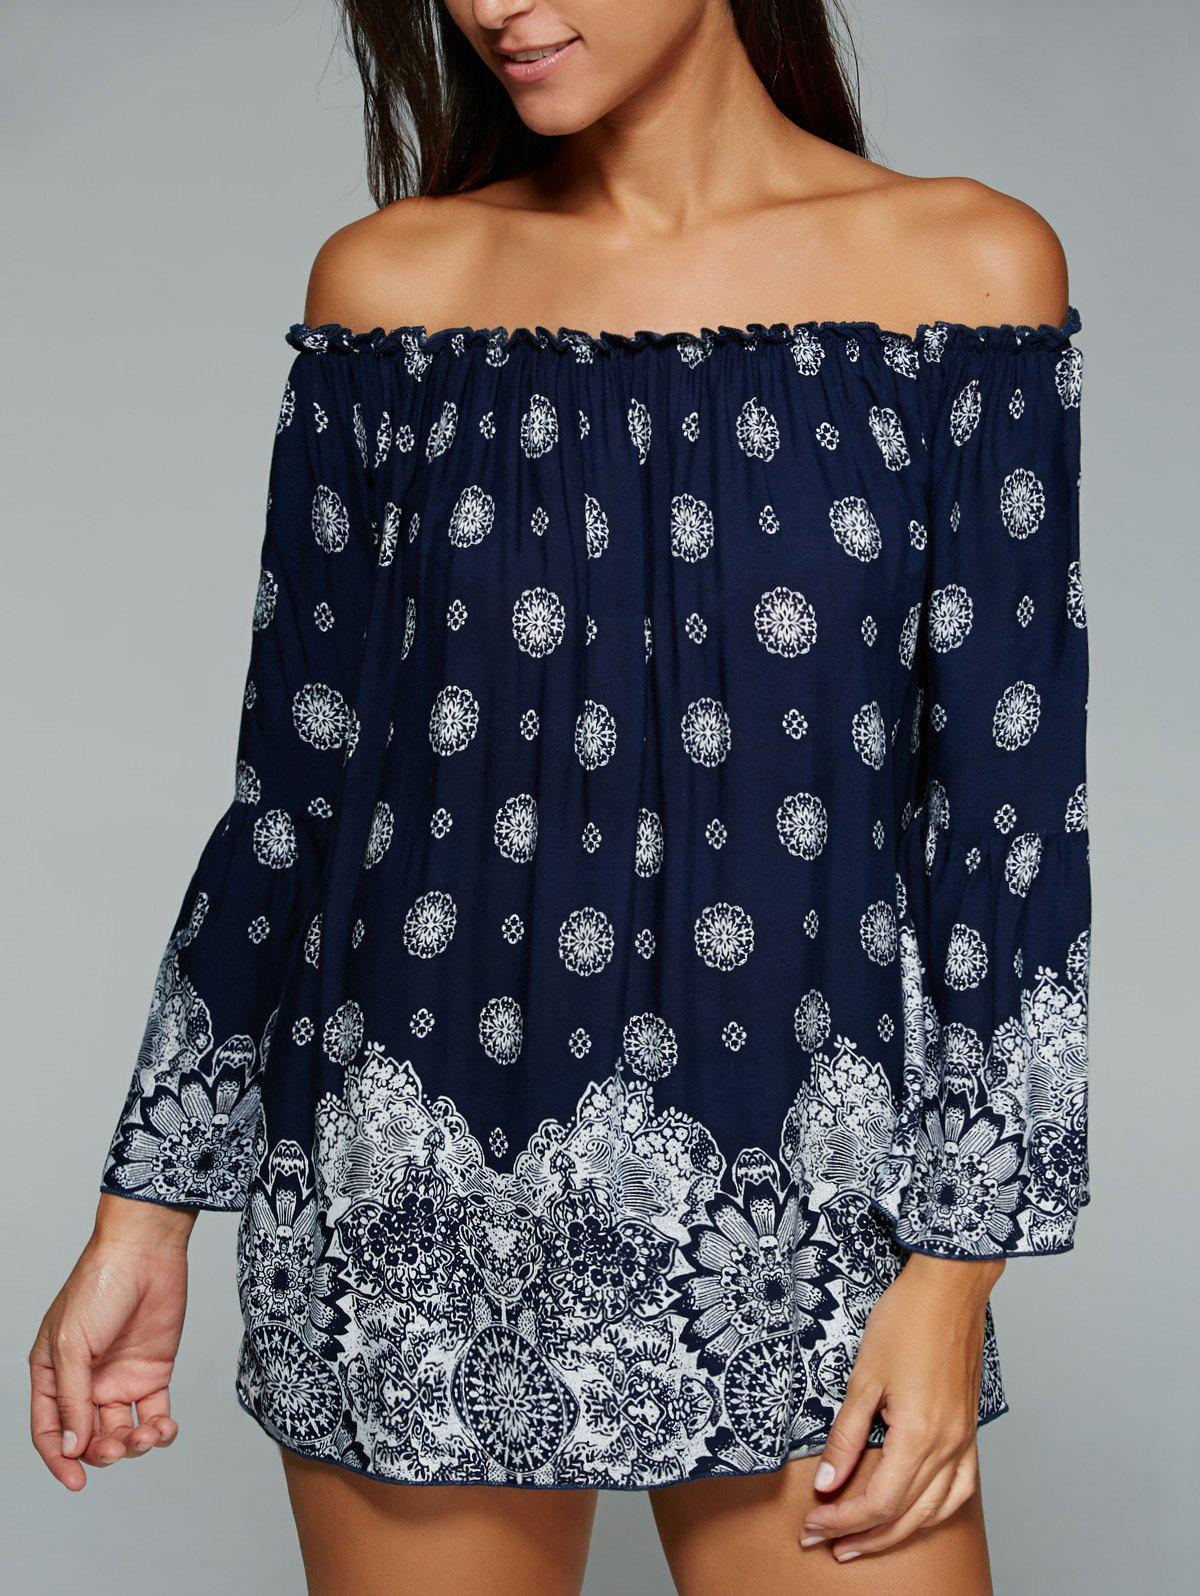 Ethnic Style Off The Shoulder Tribal Print Blouse - PURPLISH BLUE XL